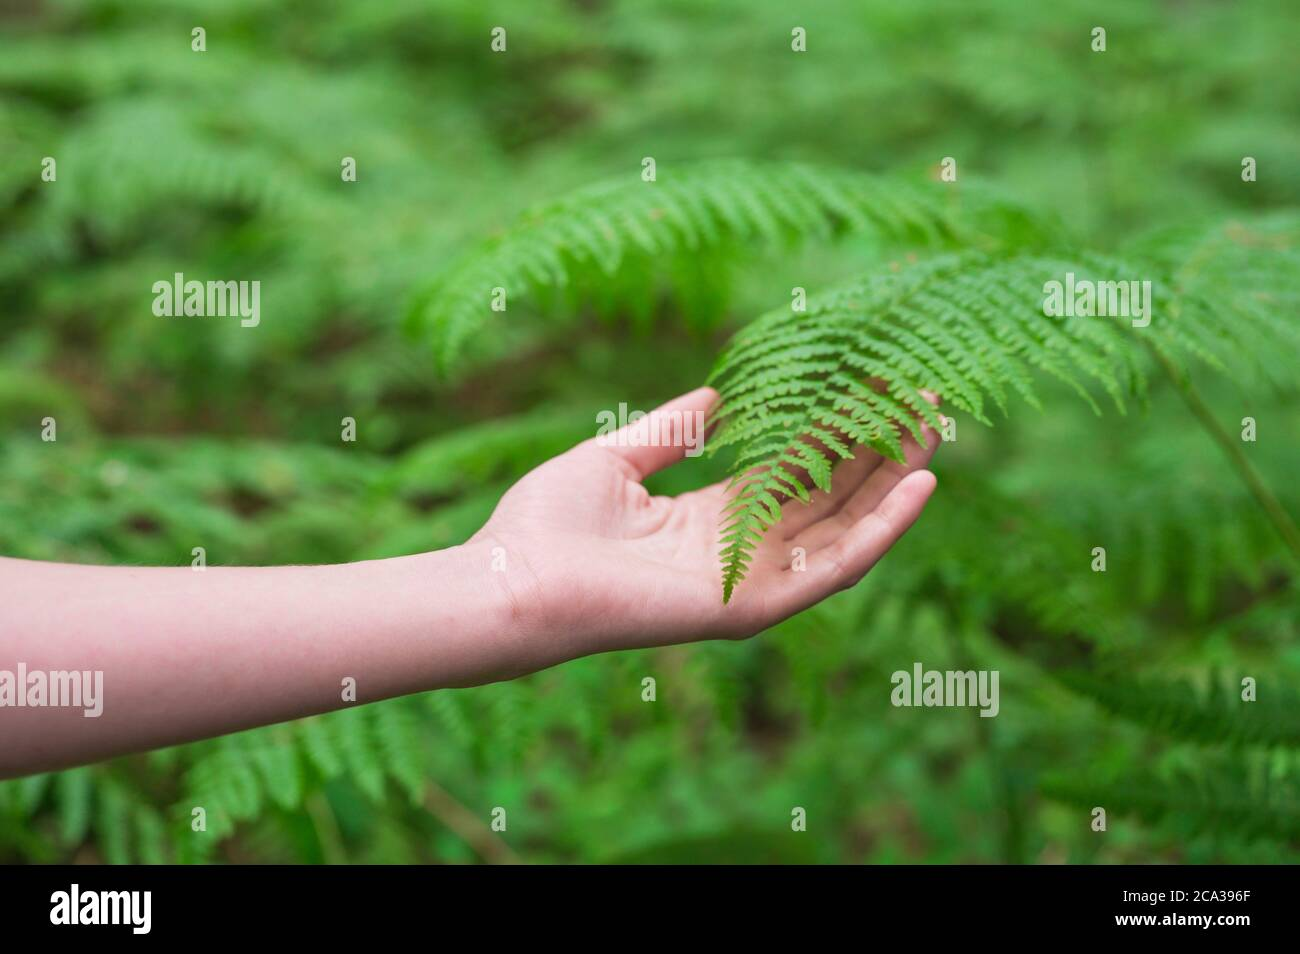 Female hand, with long graceful fingers gently touches the plant, leaves of fern. Close-up shot of unrecognizable person. High quality image. Stock Photo